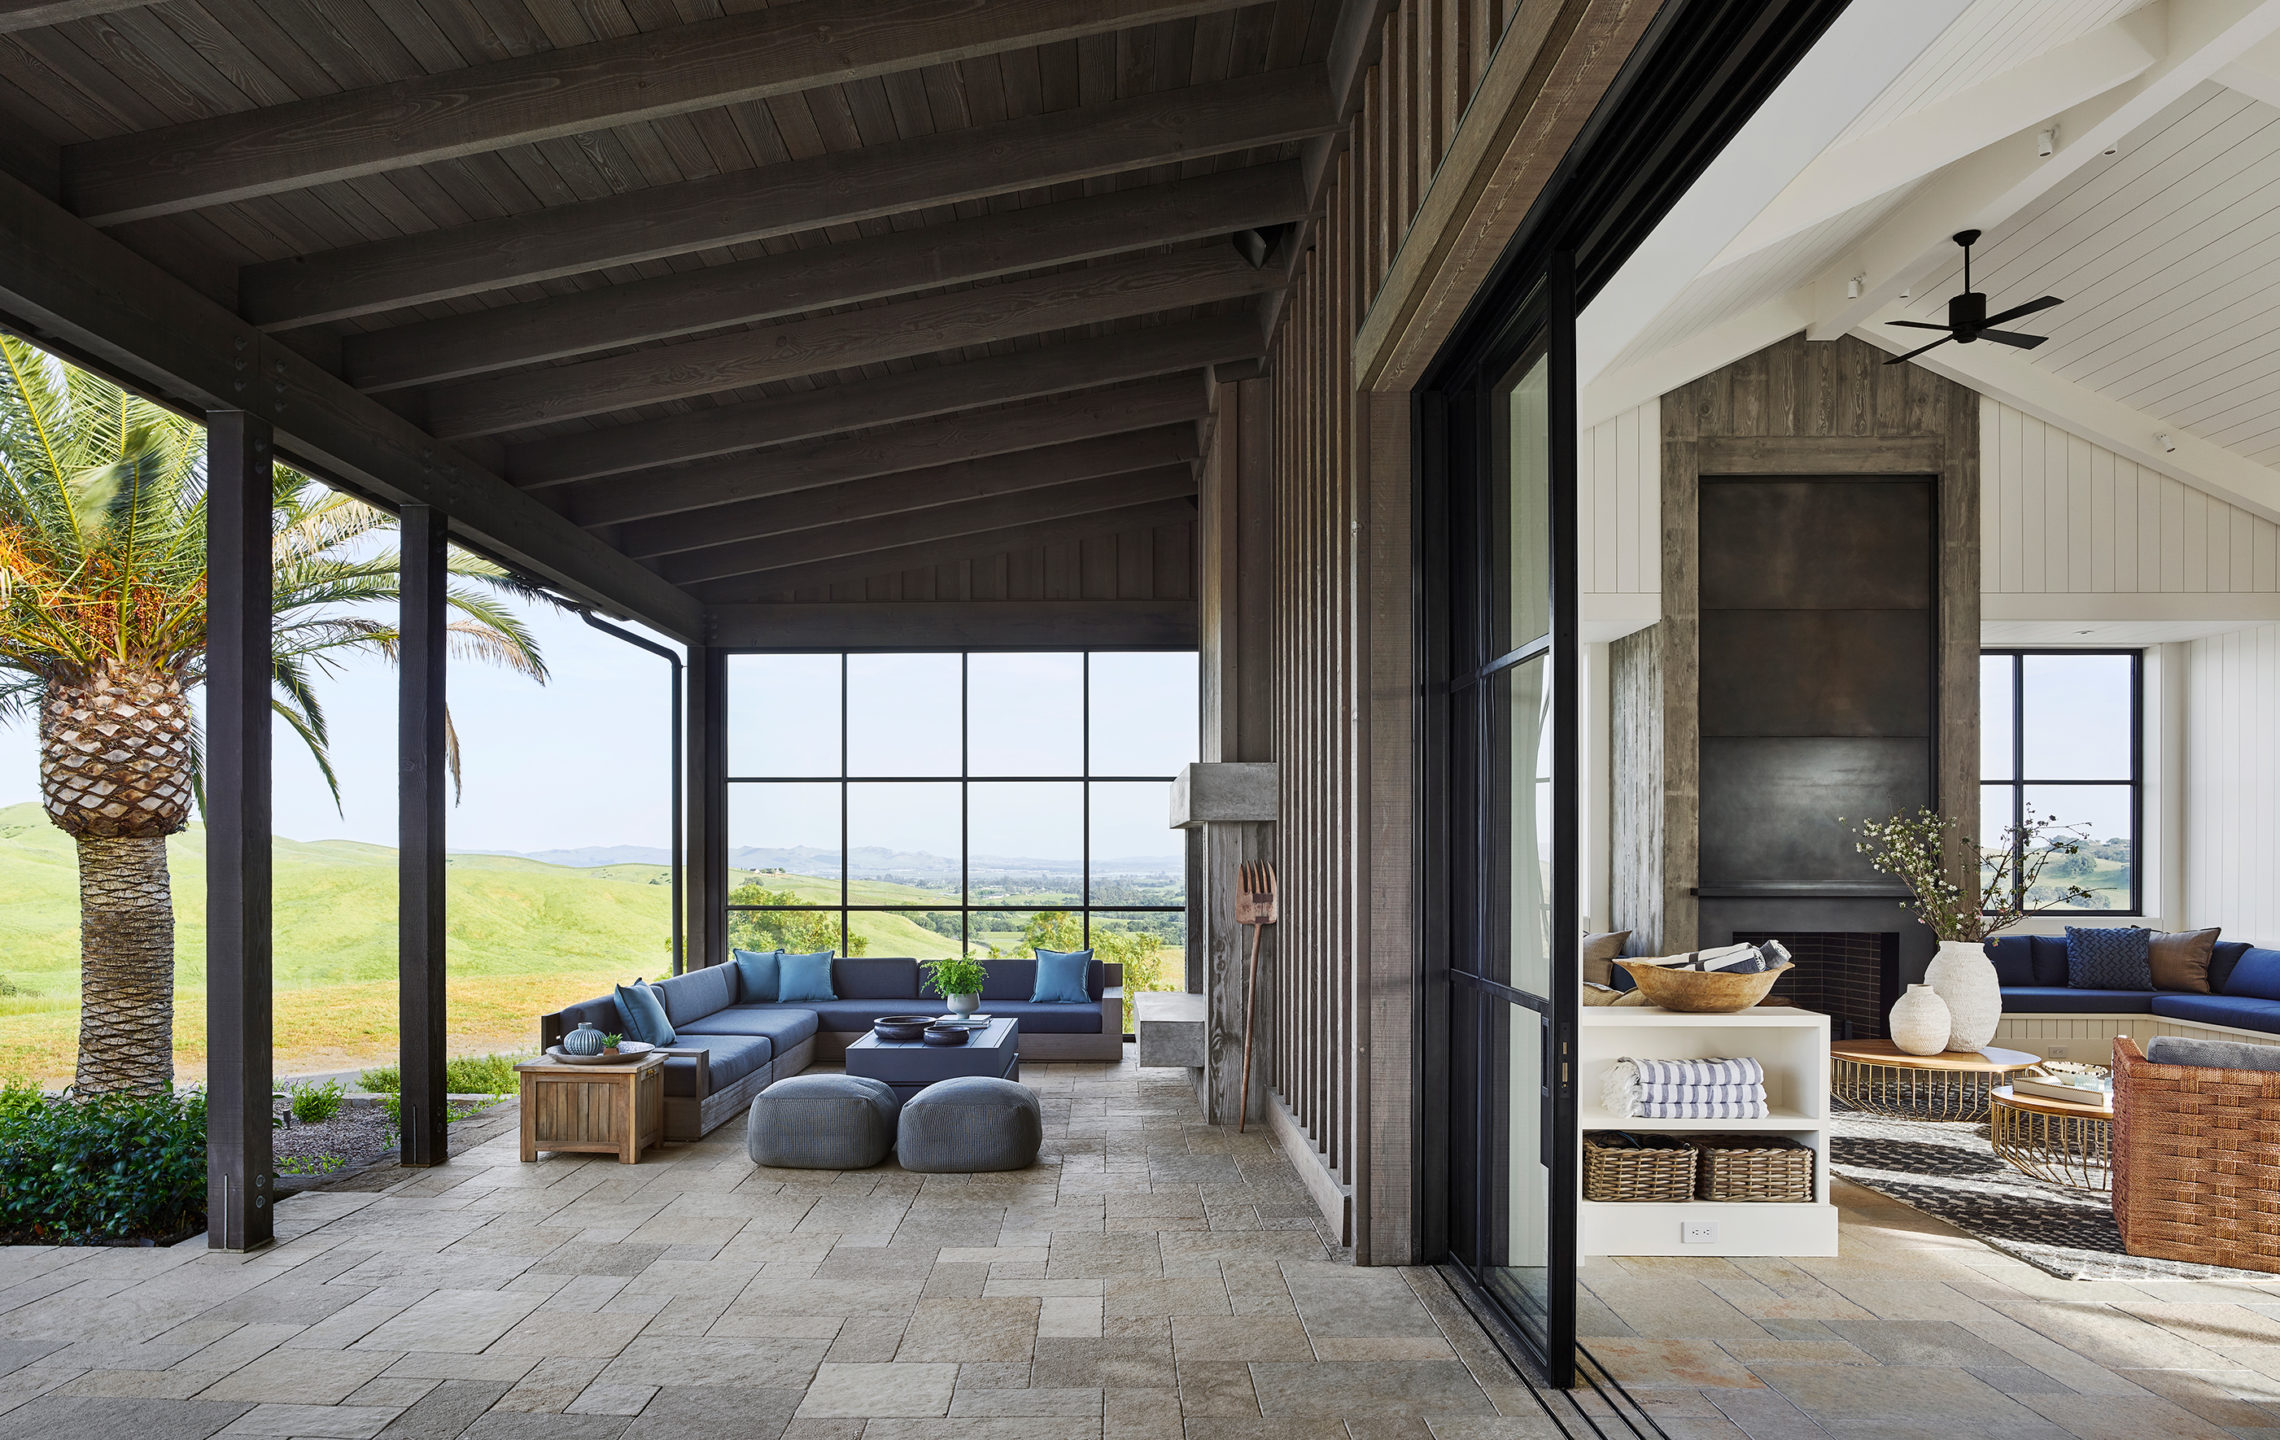 Jennifer_robins_interiors_projects_napa_valley_8_ext_exterior_interior_int_lookthrough_fireplace_living_room_LR_seating